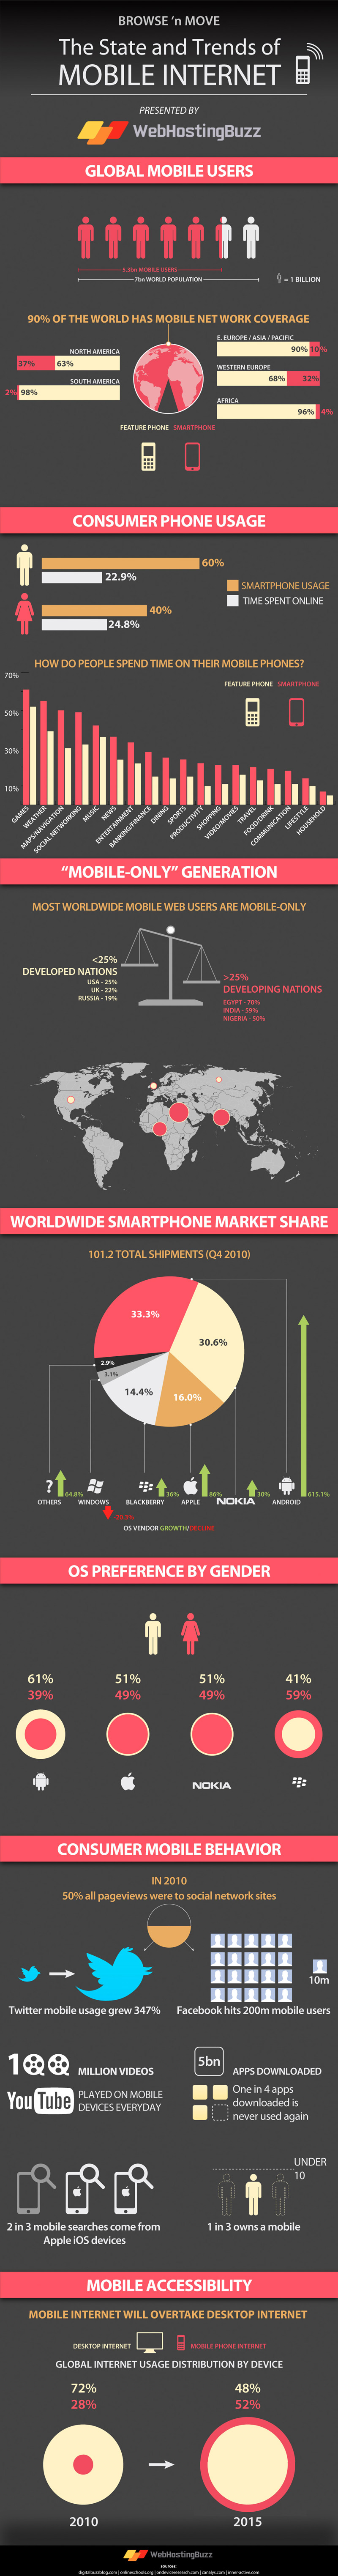 The State and Trends of Mobile Internet